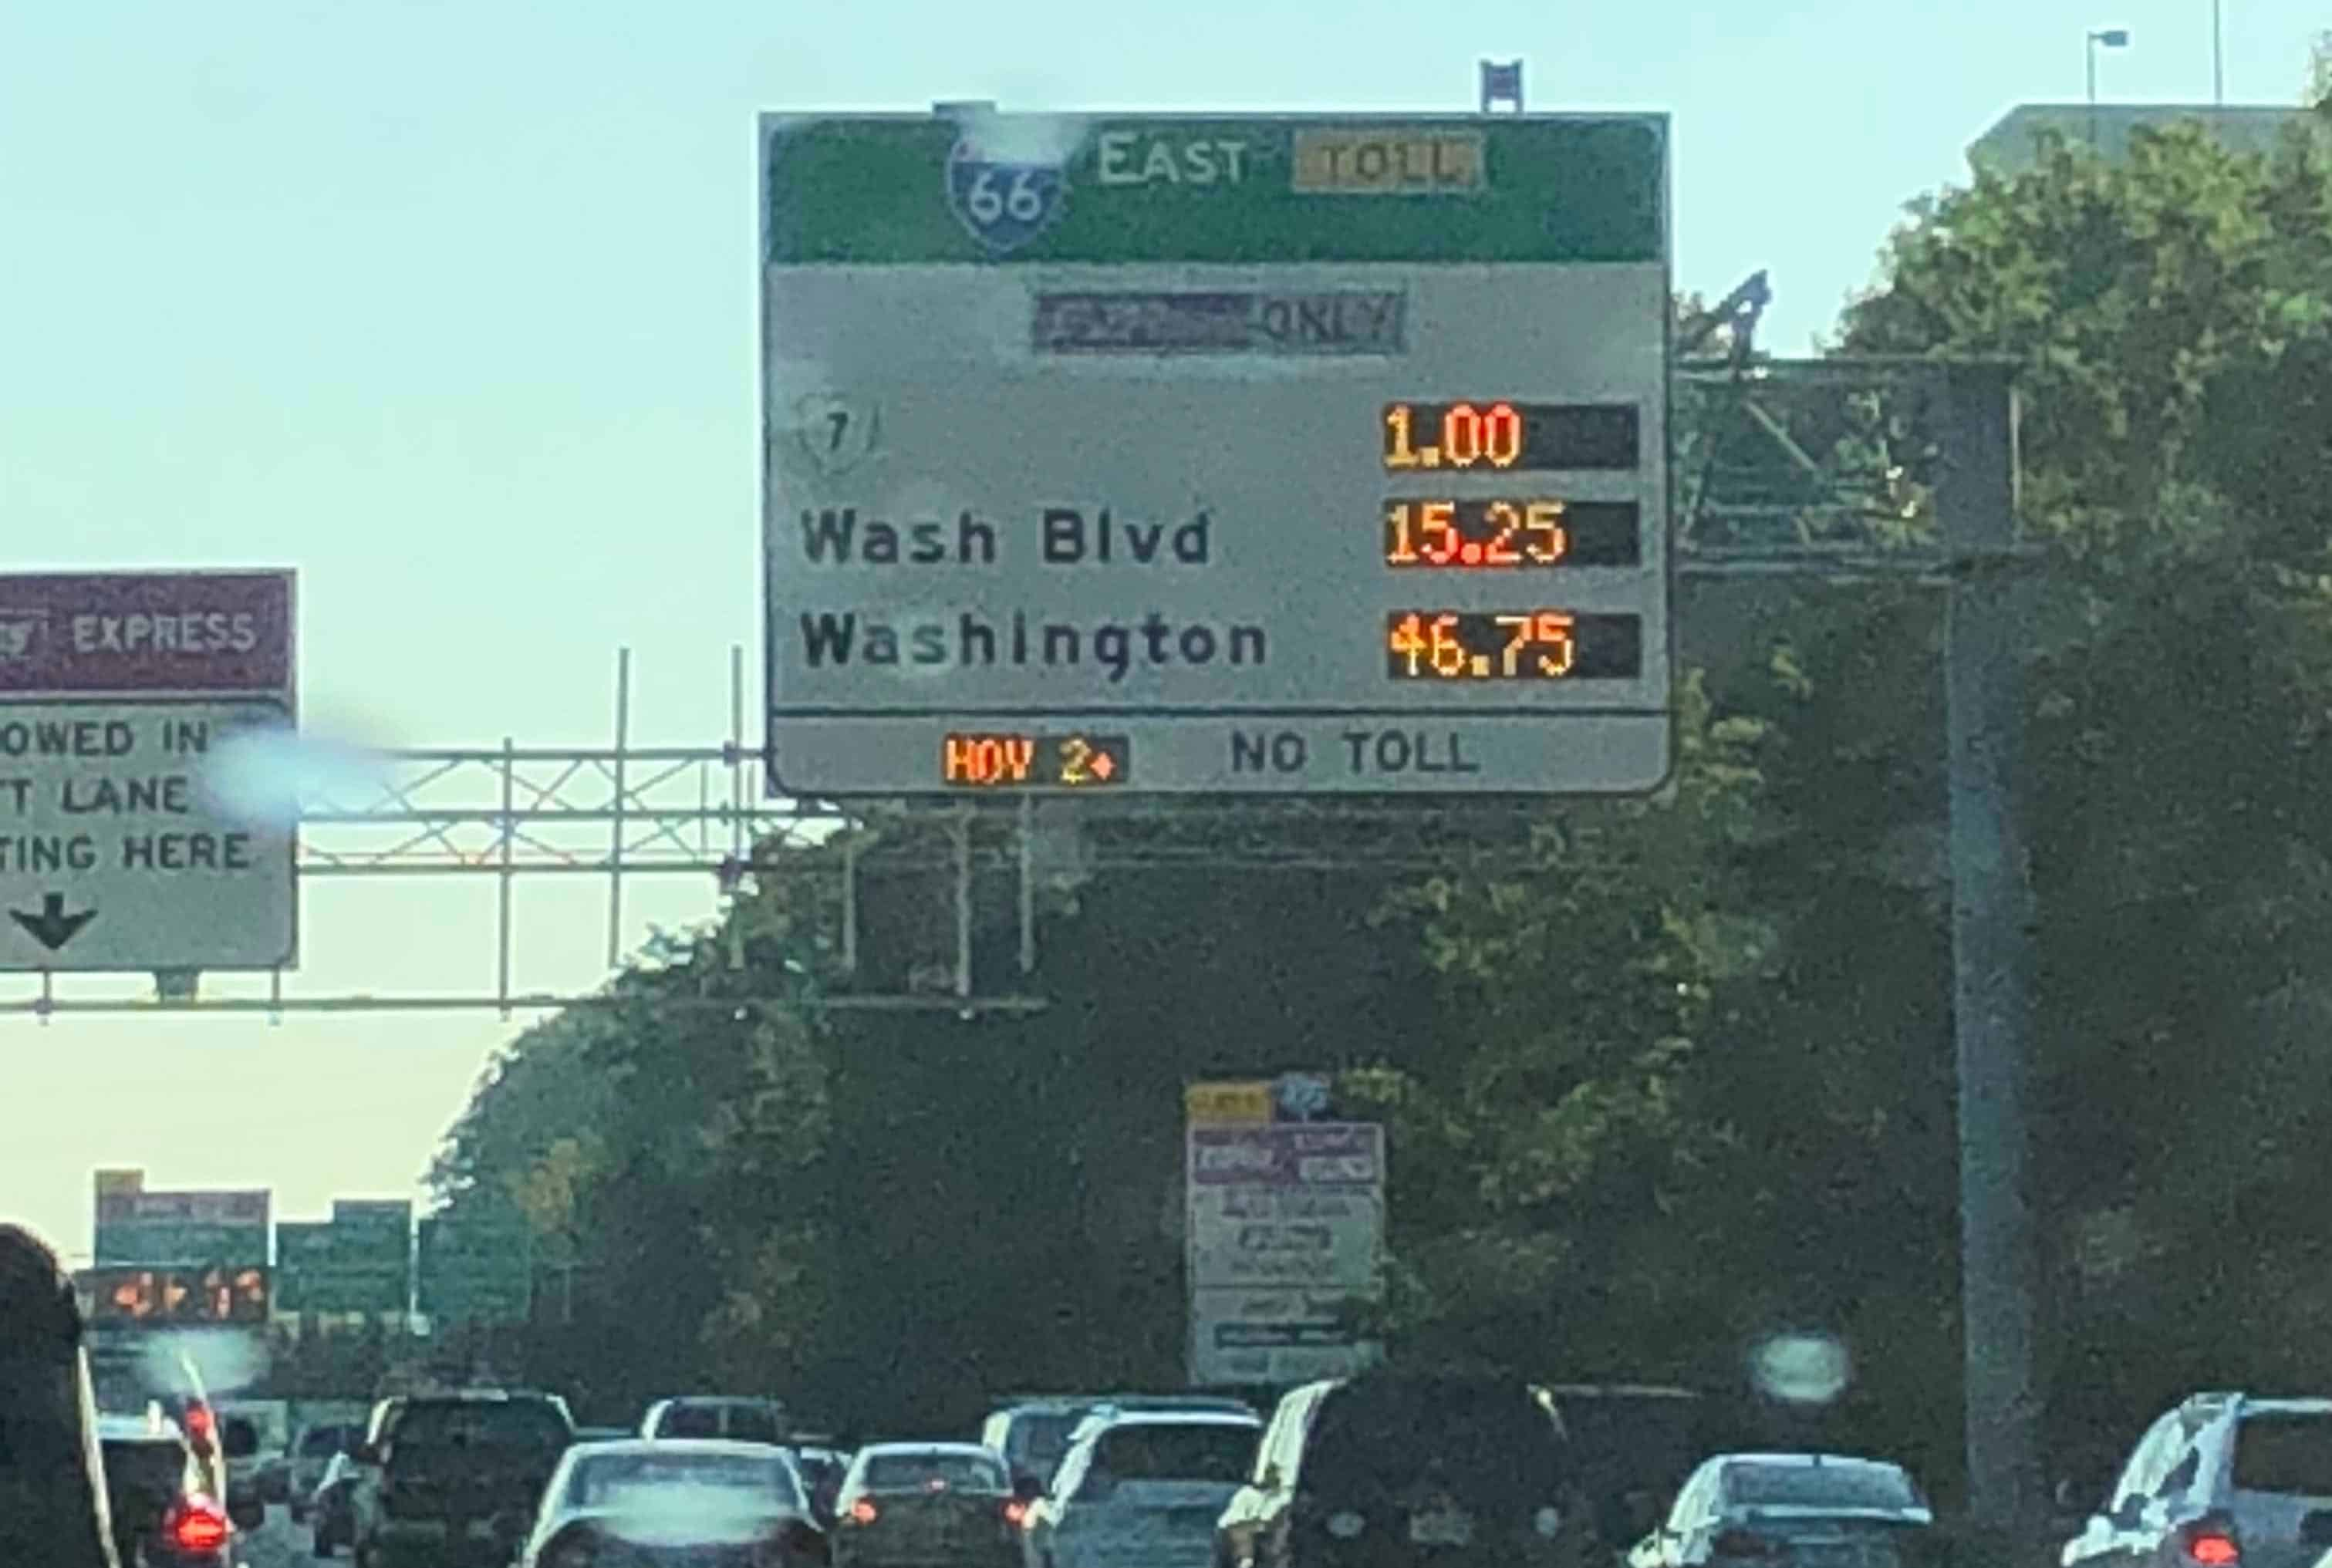 I-66 Tolls hit another high of $46.75